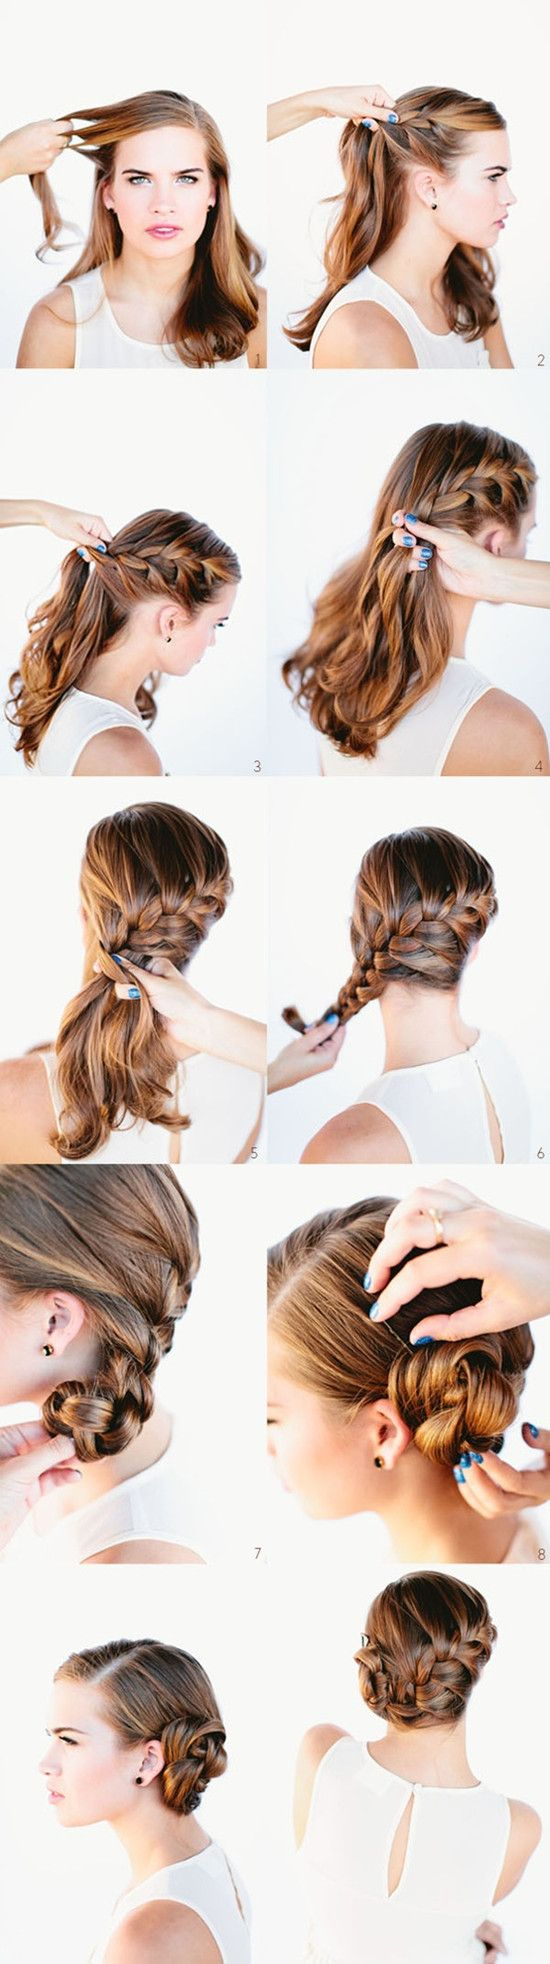 Braid Hairstyles Search Glamourcom - Hairstyles tutorial